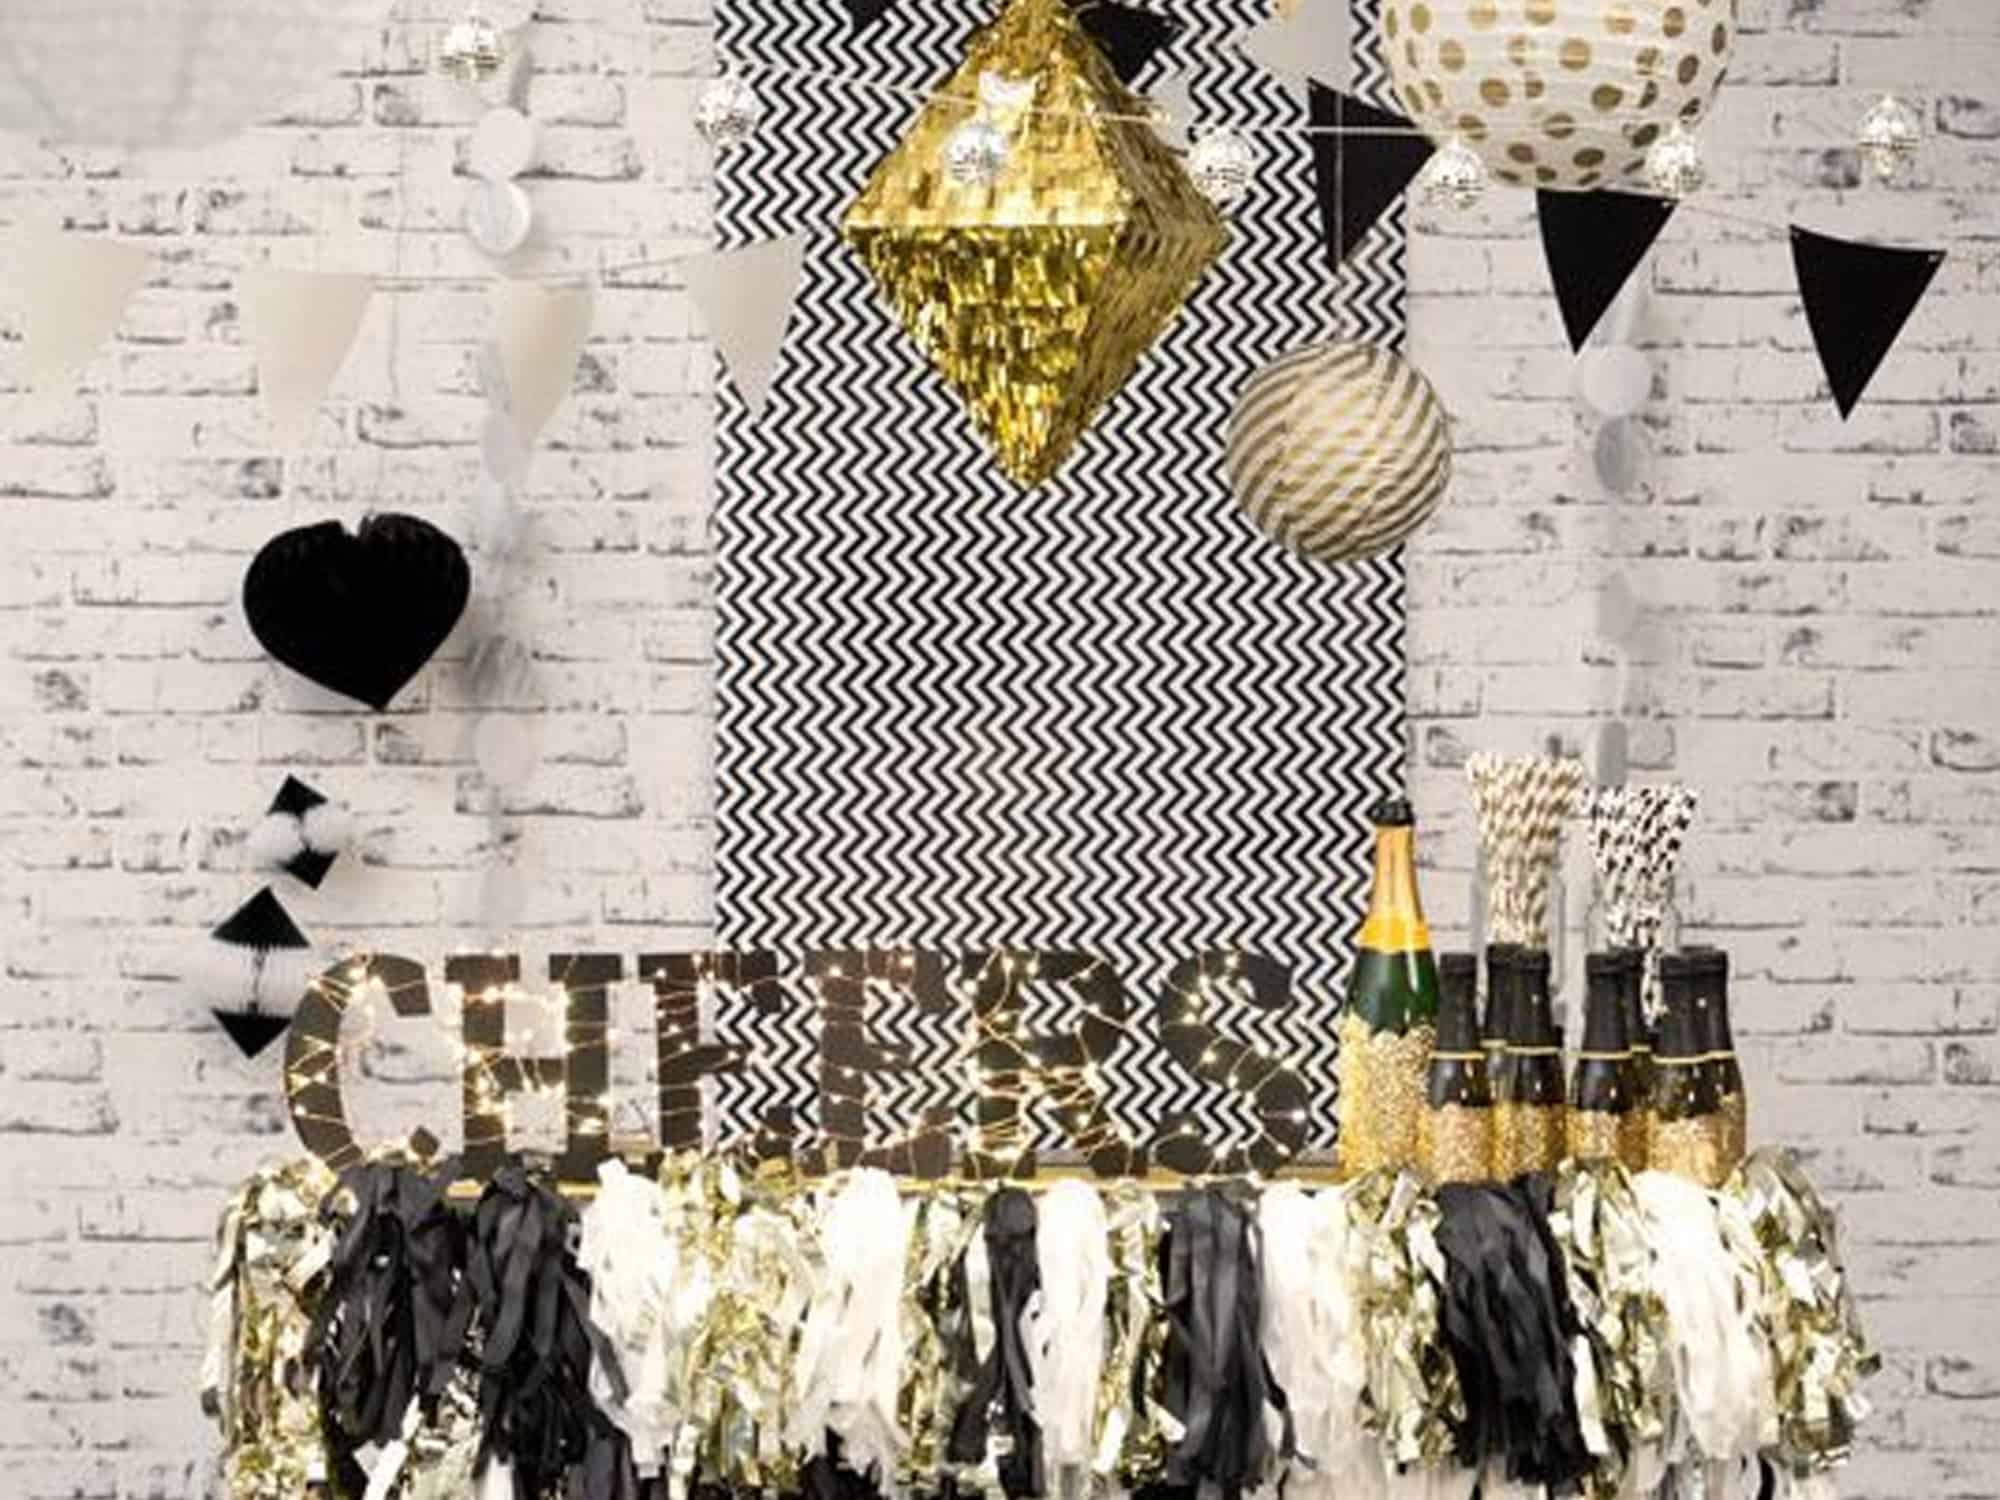 New Years Eve Theme Party Ideas Your Guests Will Love - Society19